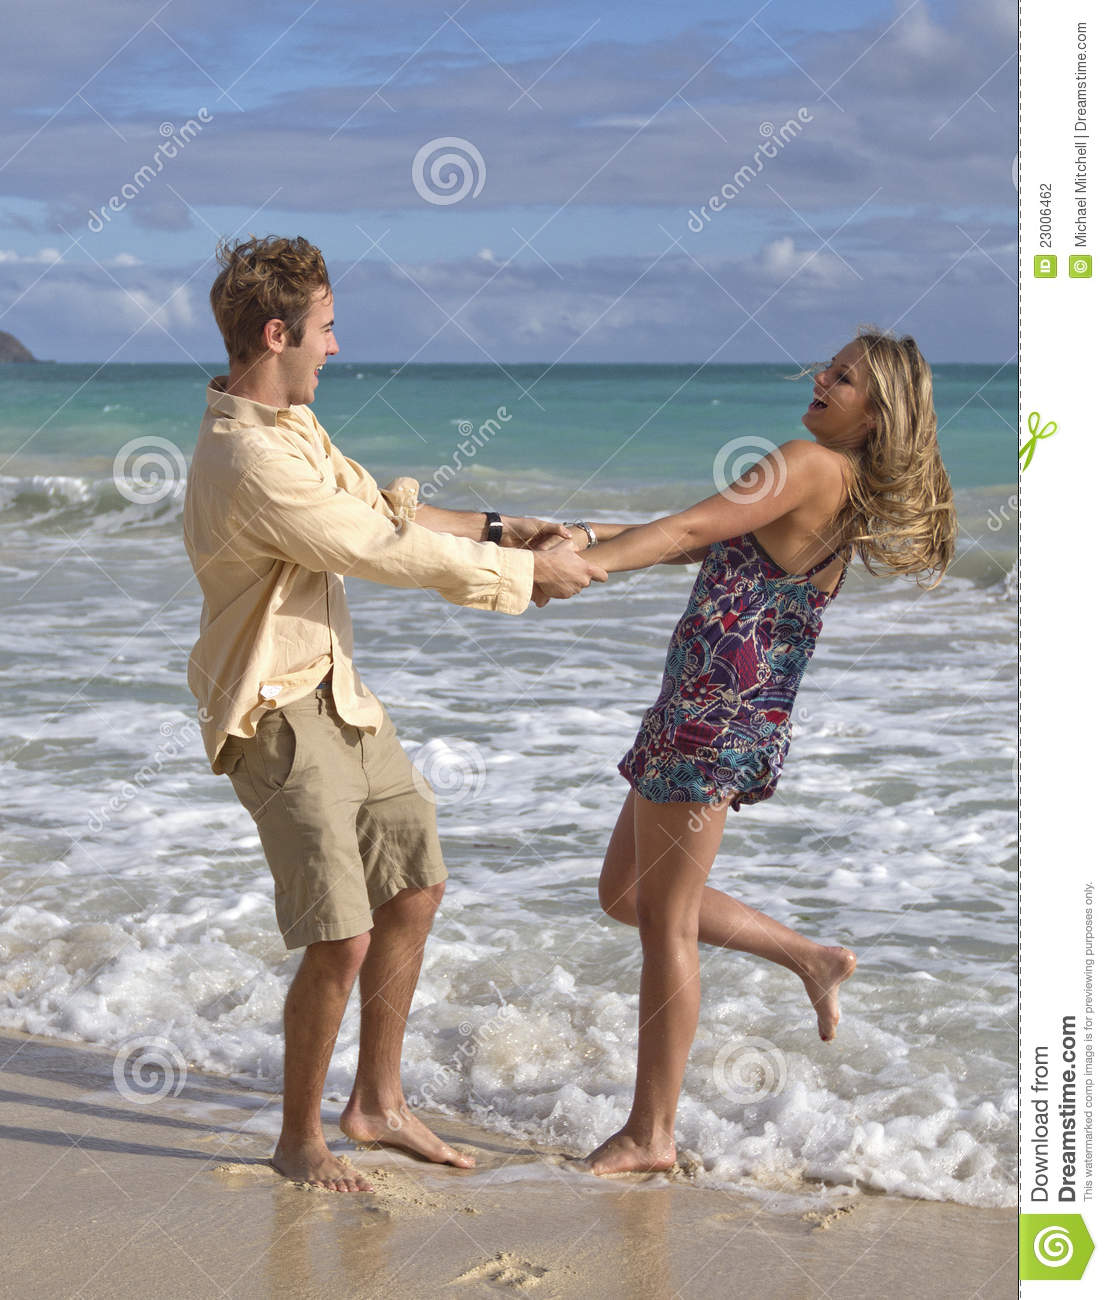 Couple At The Beach Stock Image Image Of Caucasian: A Young Couple Dance On The Beach Stock Photo